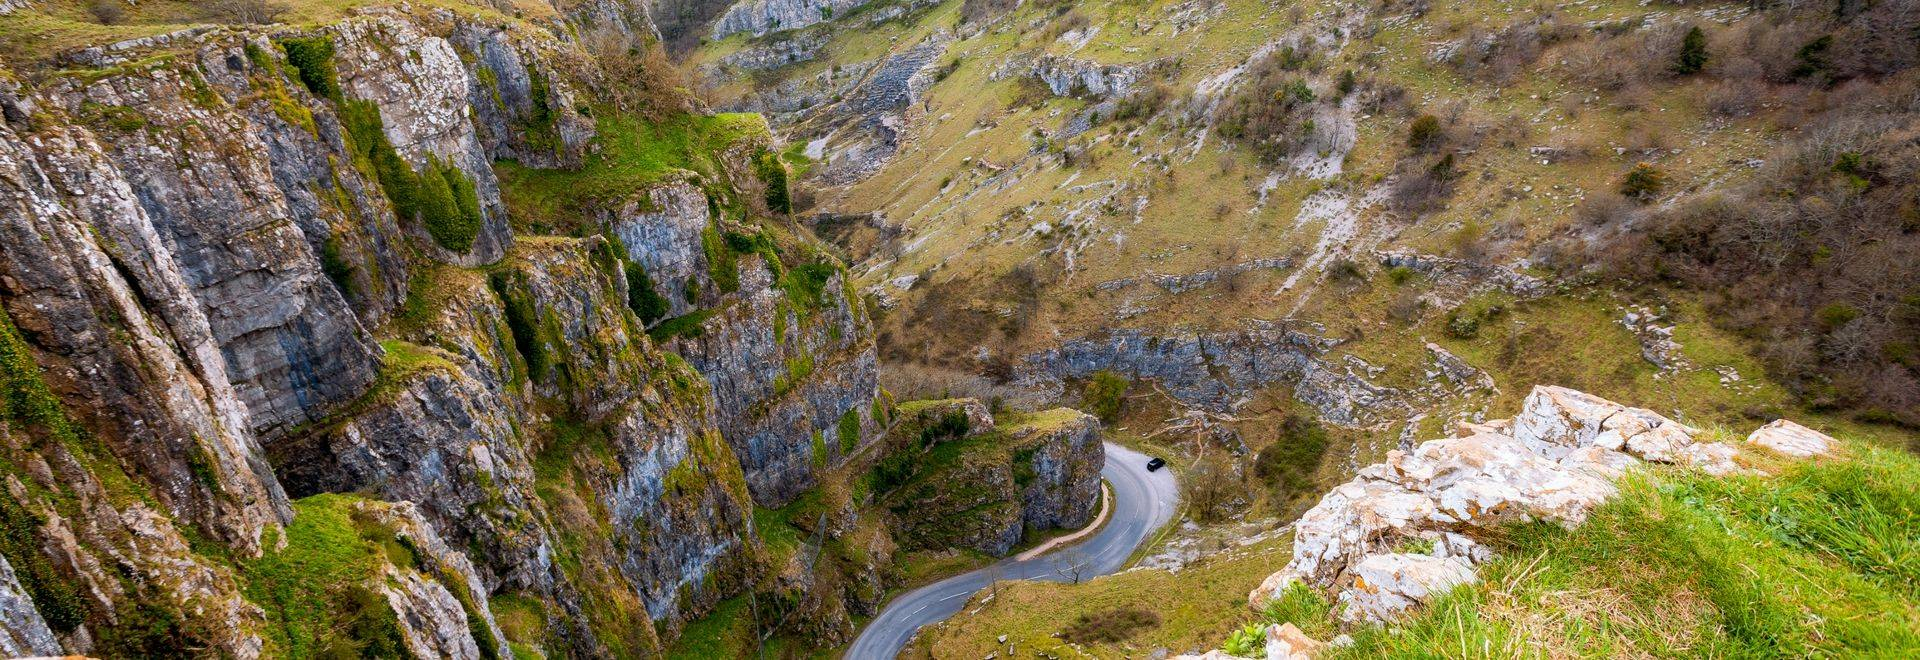 Cheddar Gorge viewed from above in Cheddar, Somerset, England